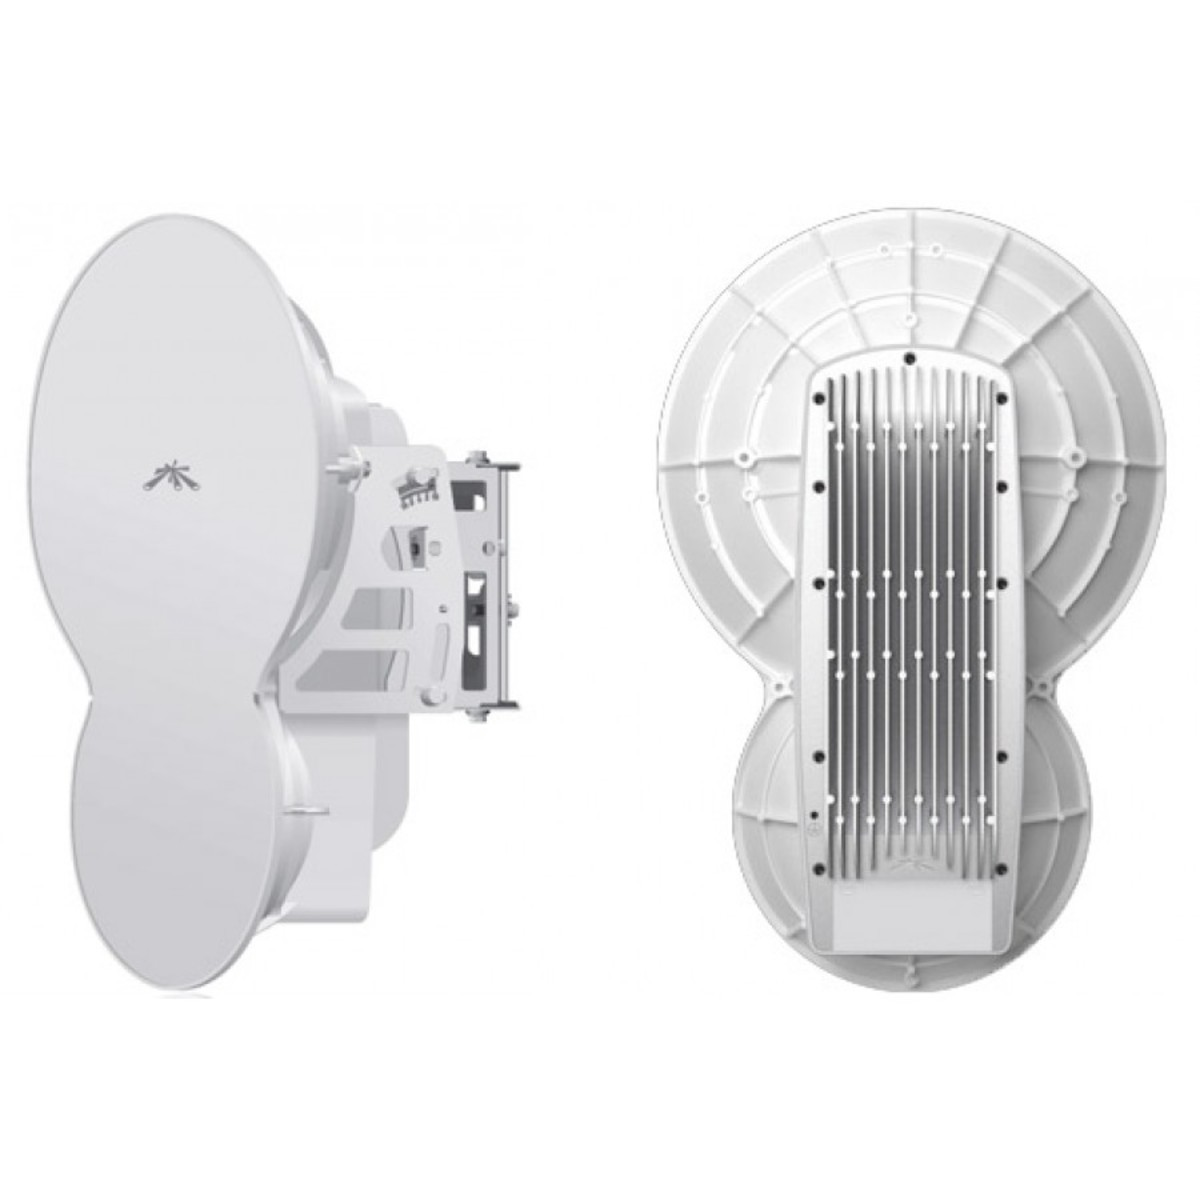 ubiquiti-airfiber-24ghz-wireless-point-to-point-radio-14-gbps